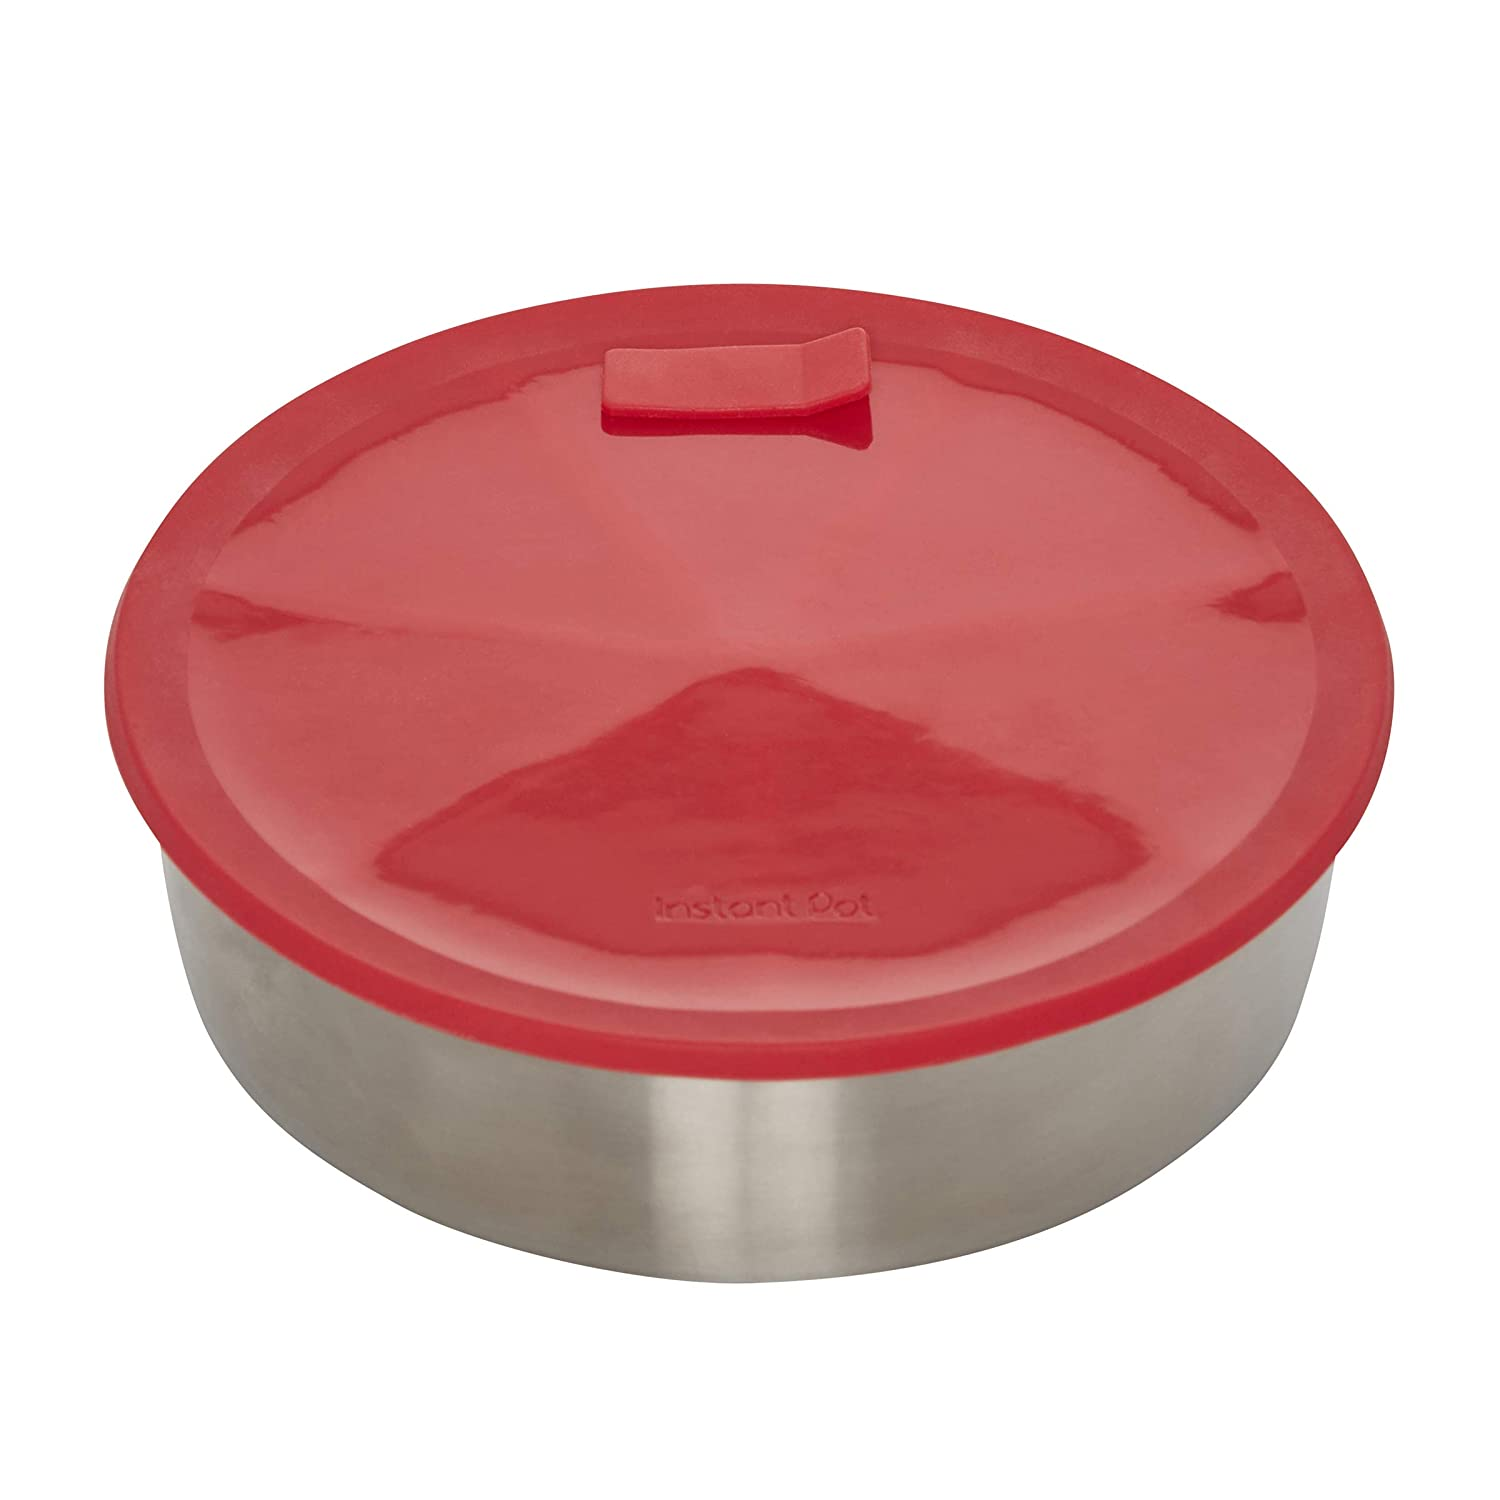 Red 7-inch Instant Pot 5252078 Offical Round Cake Pan